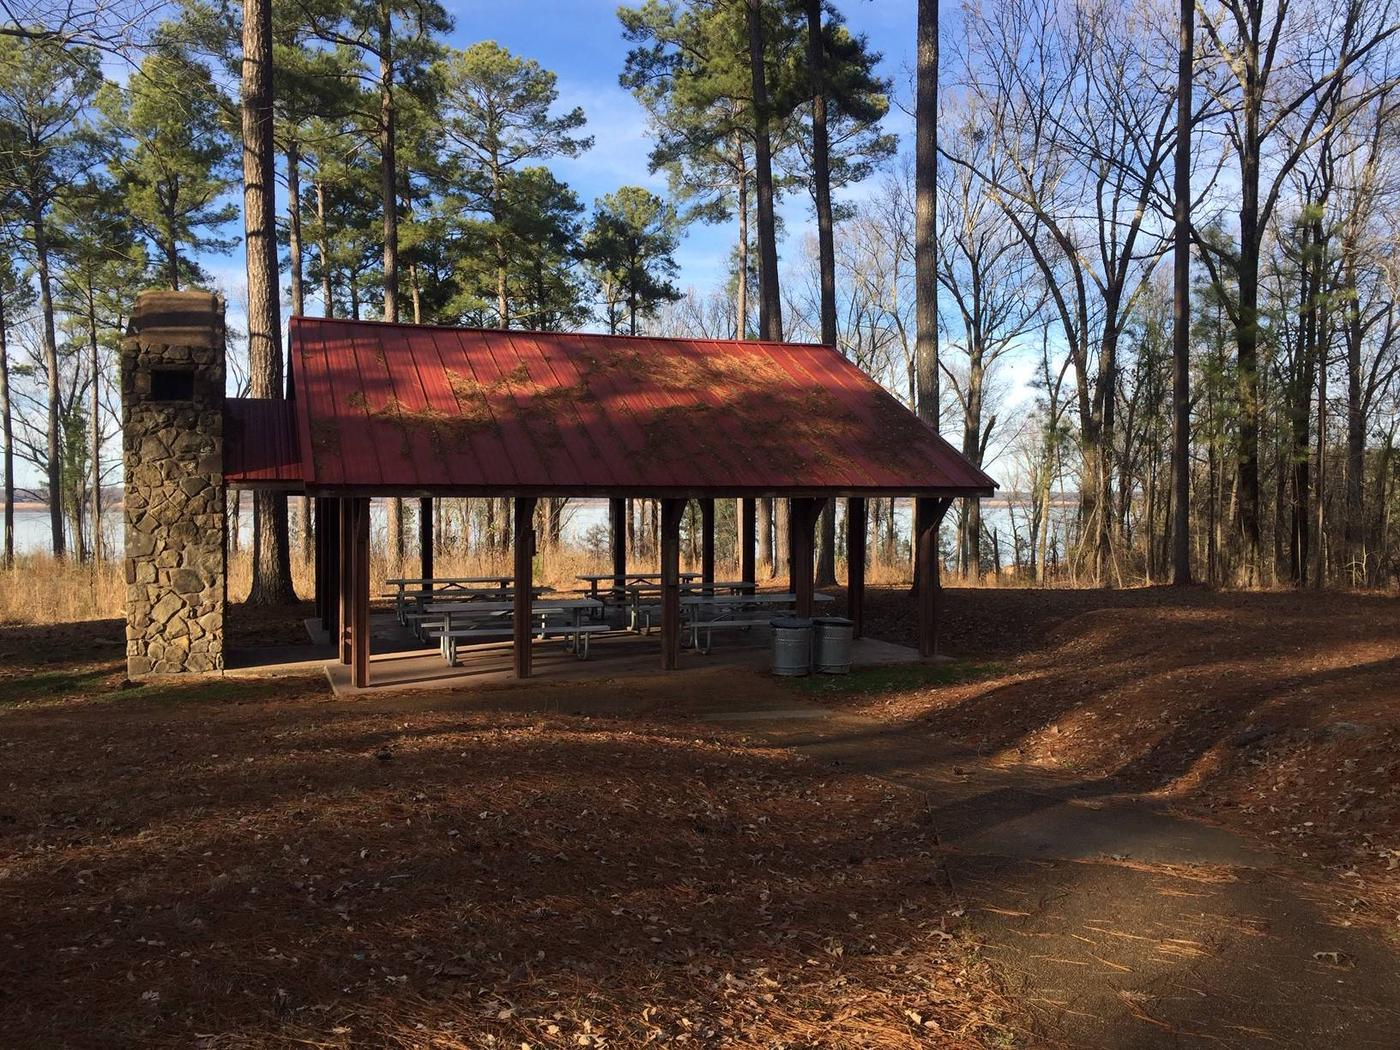 Pavilion located in the day use area of Pat's Bluff Pat's Bluff Picnic Shelter